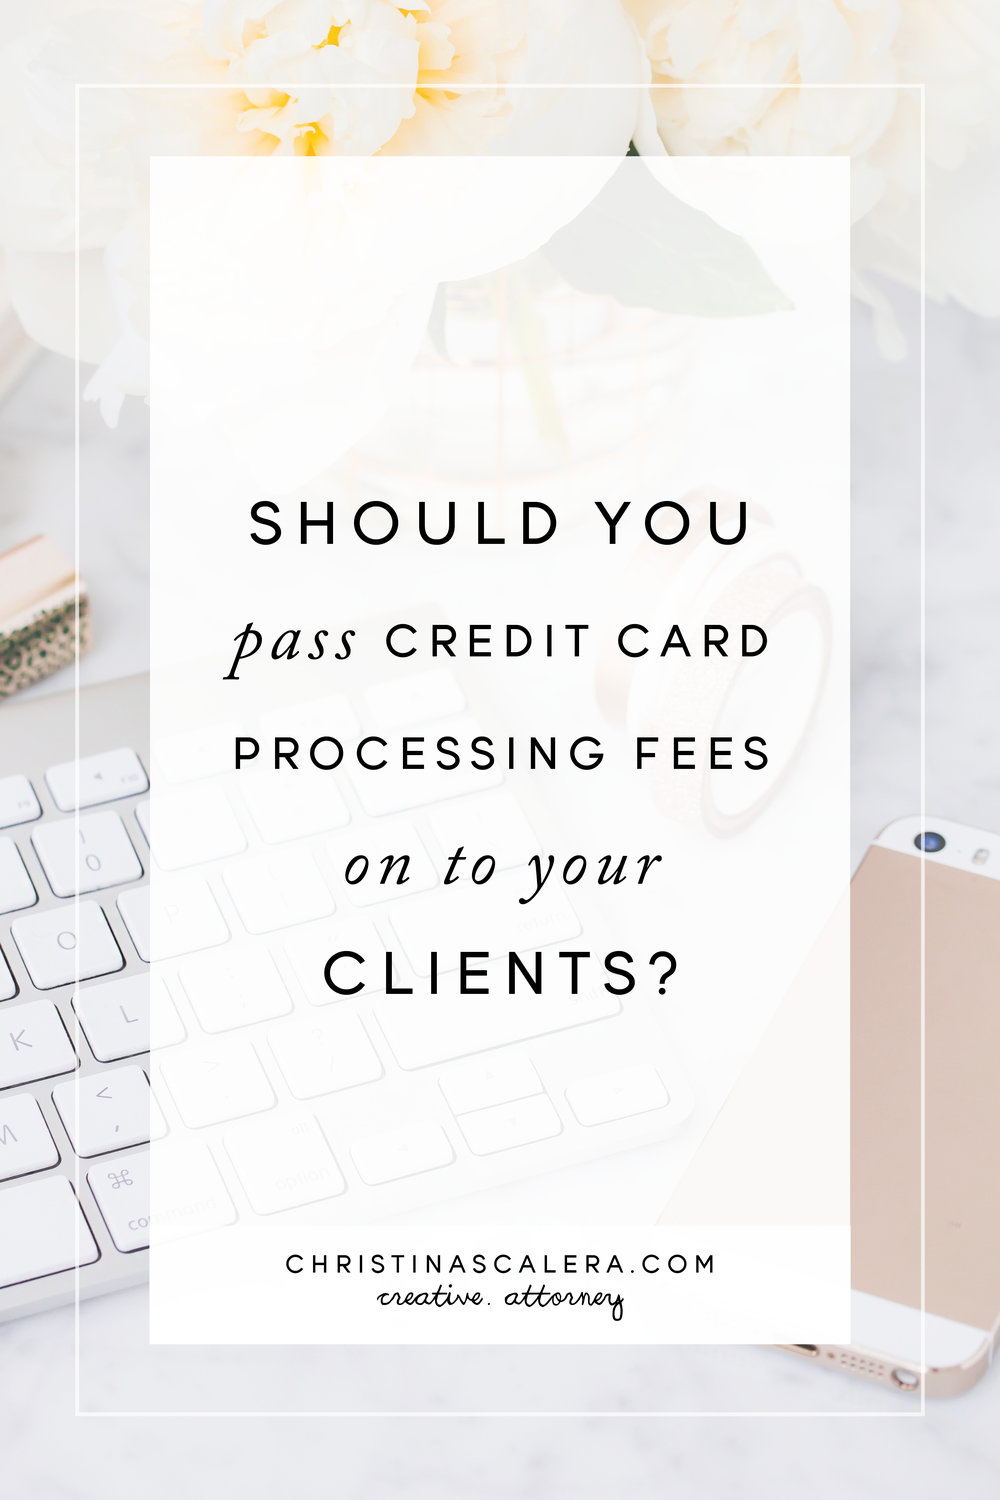 Passing Credit Card Processing Fees on to your Clients.